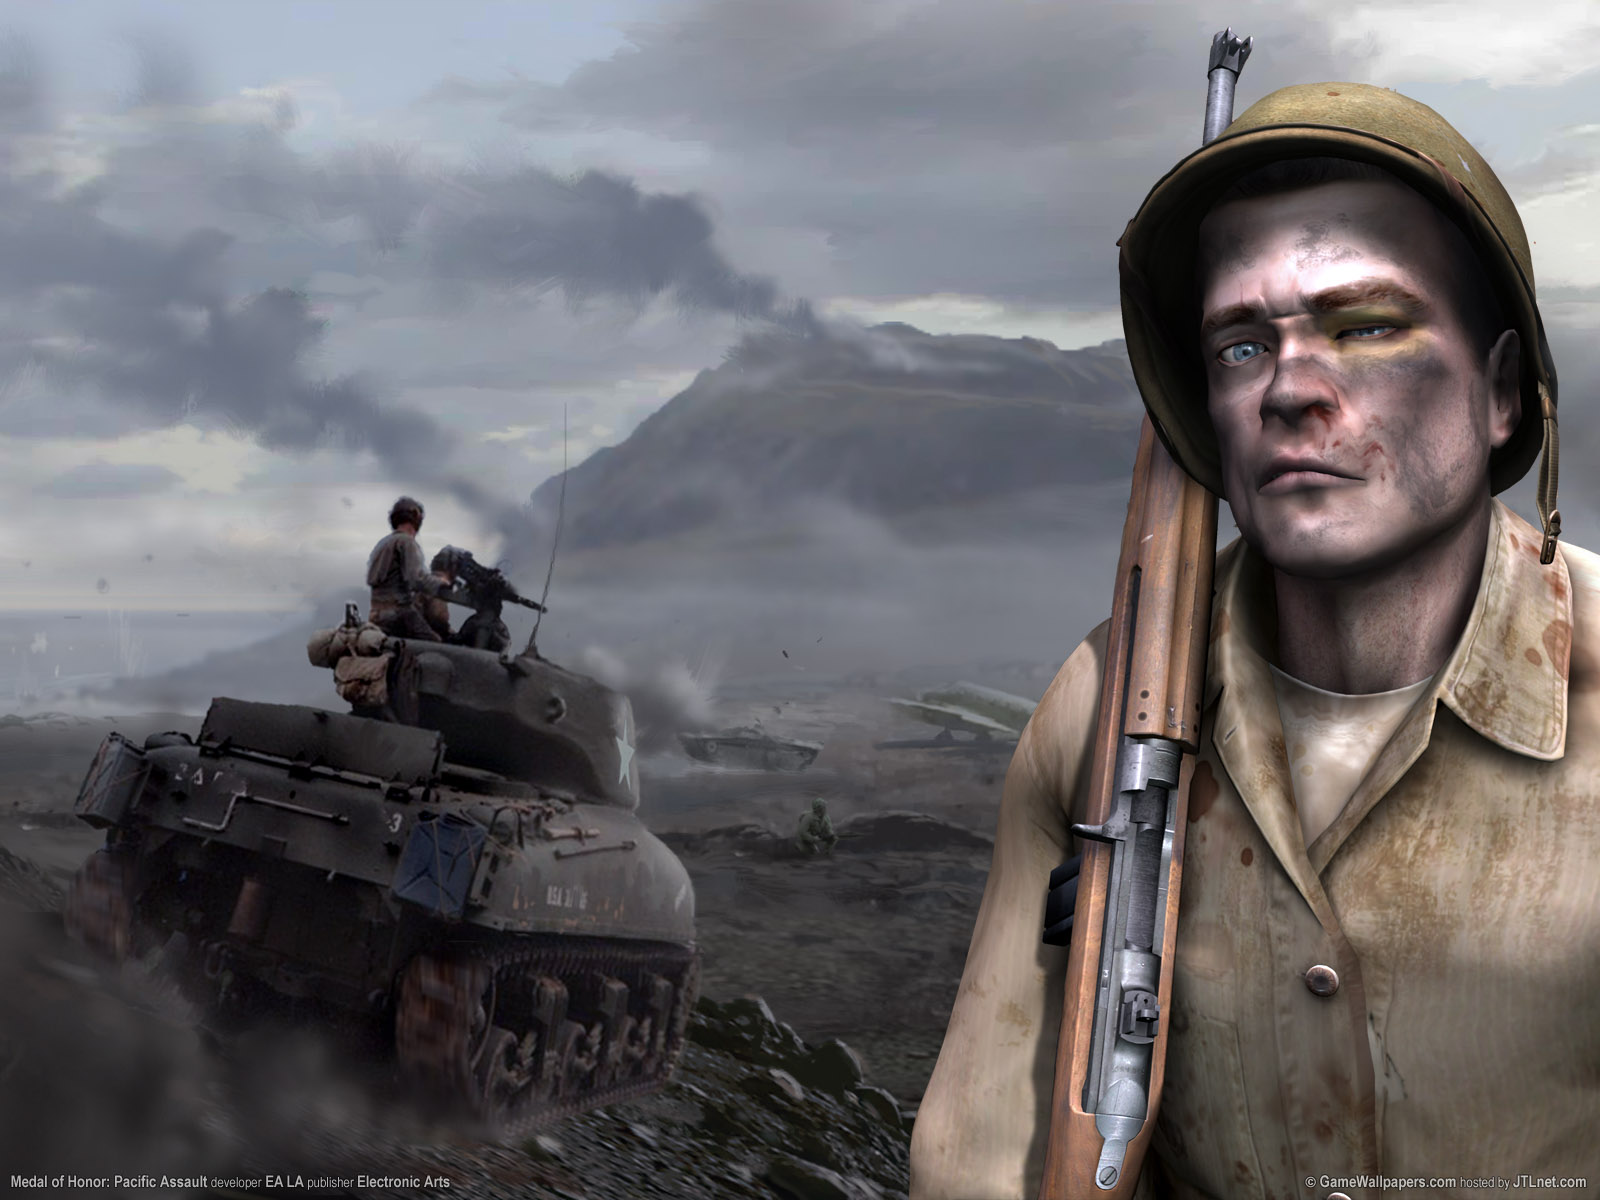 Devil 3d Hd Wallpapers Medal Of Honor Pacific Assault Wallpapers Medal Of Honor